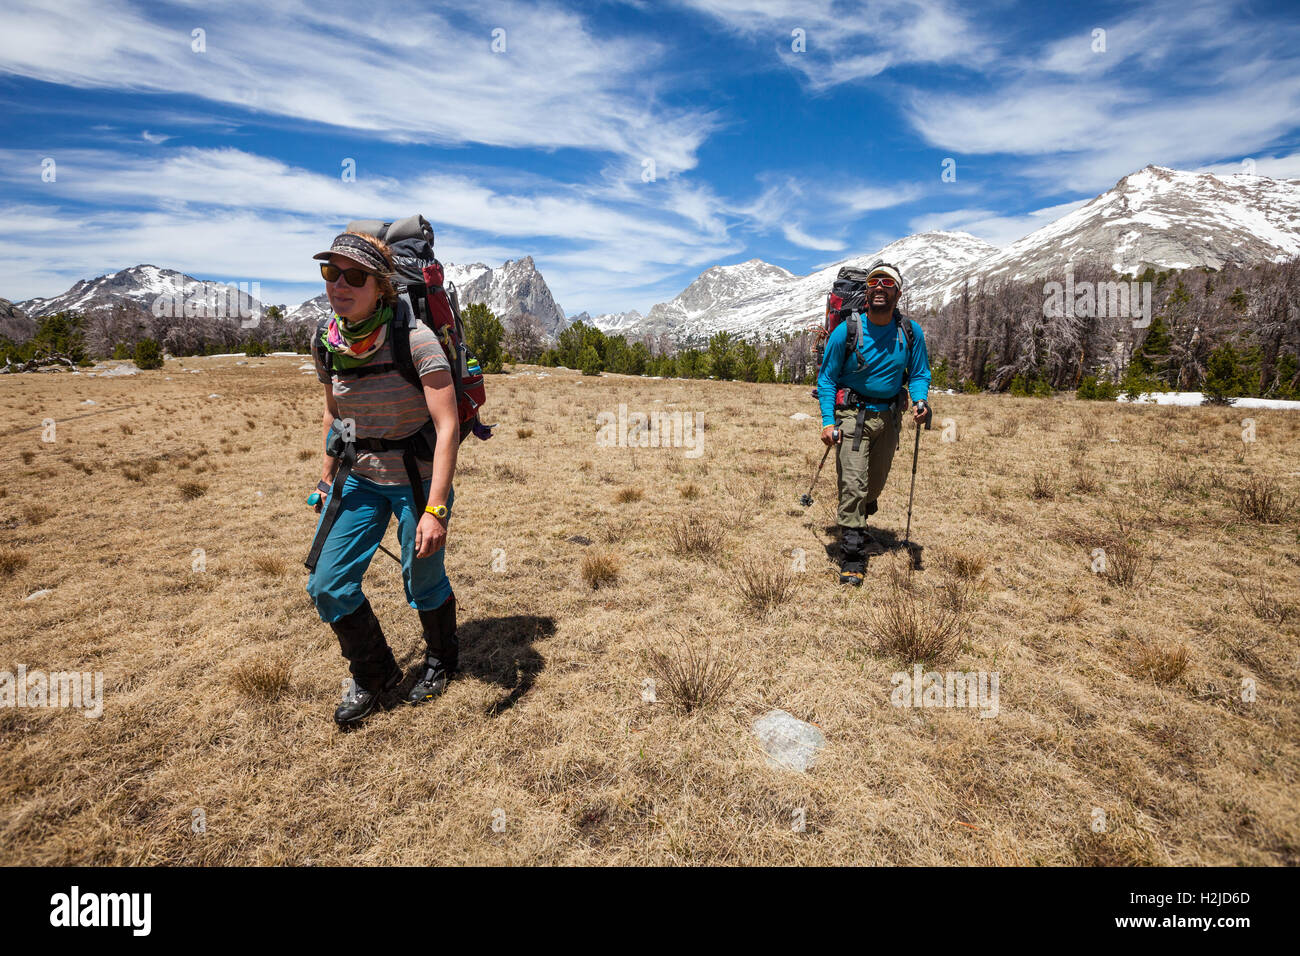 Two people backpacking in the Wind River Mountains of Wyoming, heading towards Temple Pass/Temple Peak - Stock Image